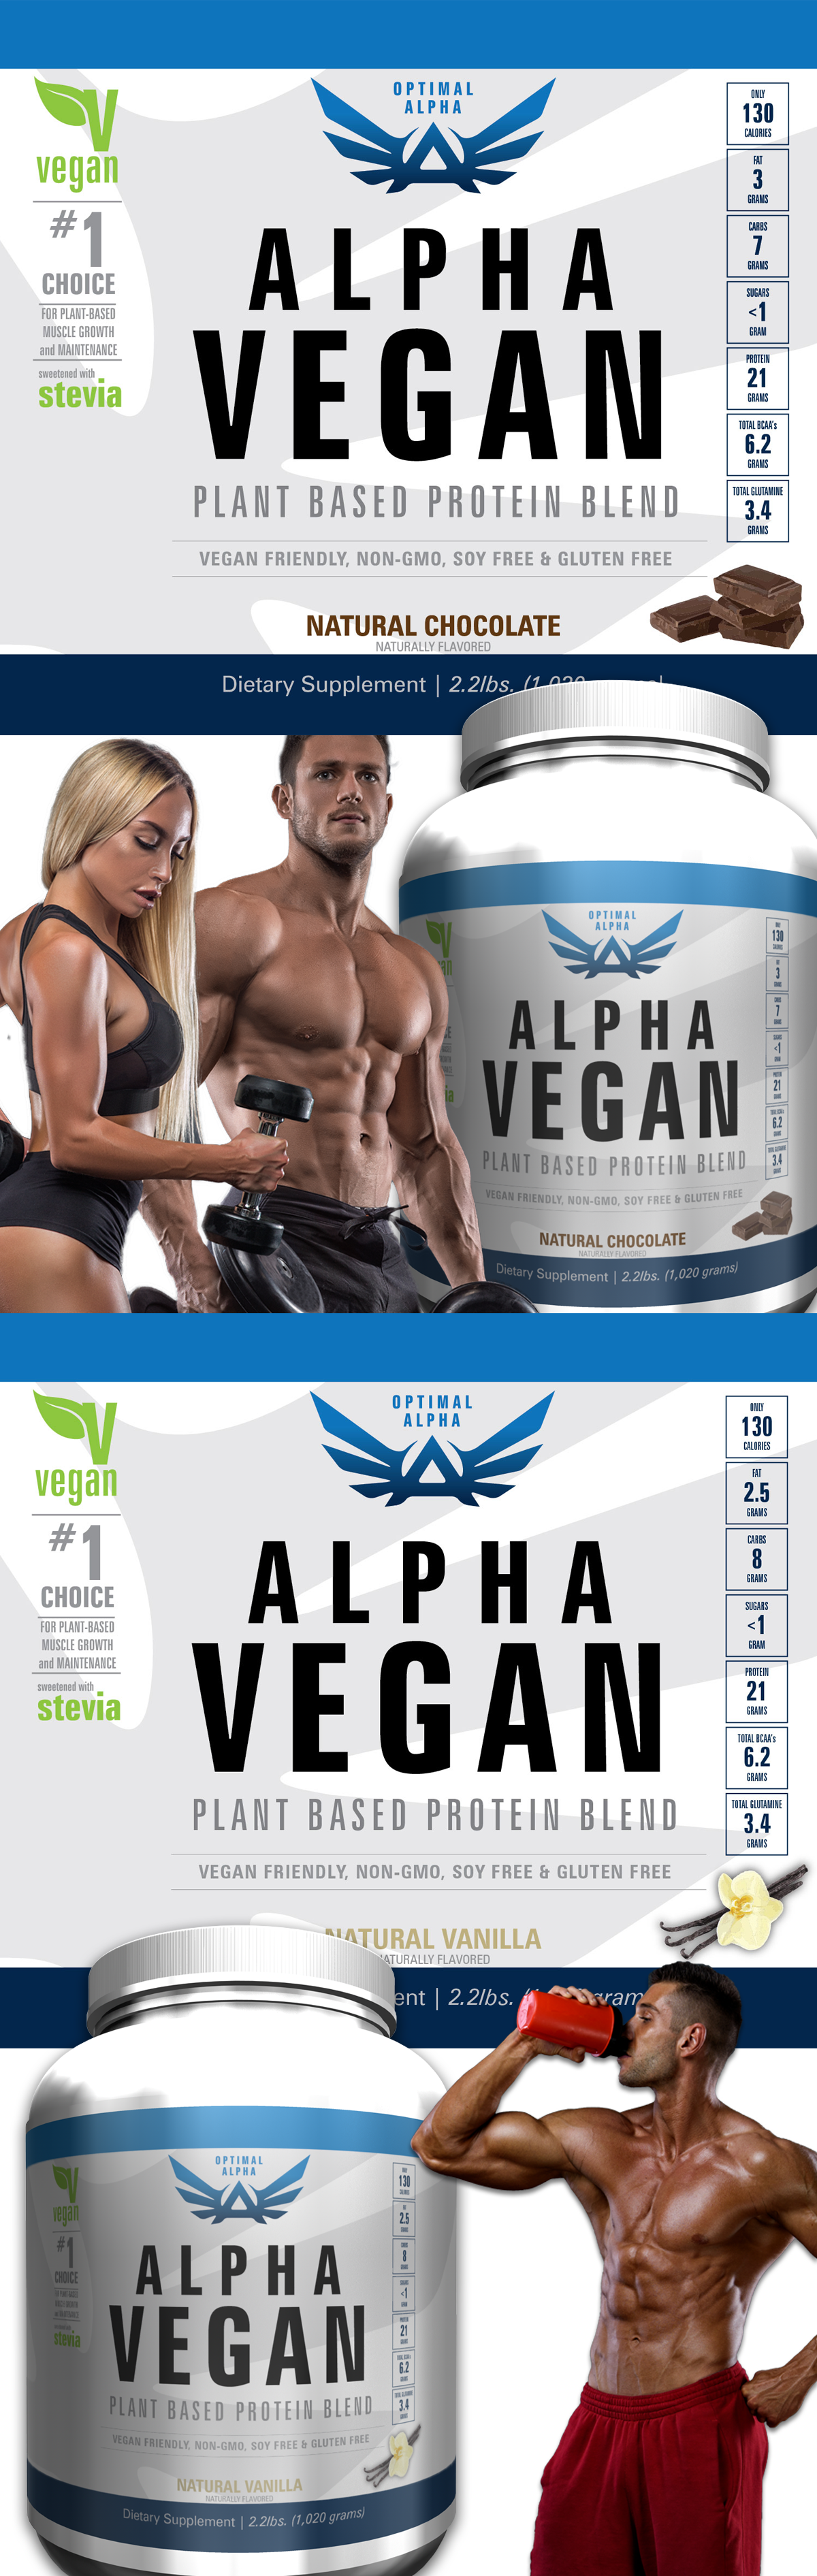 Plant Based Vegan Gainz at IMSOALPHA